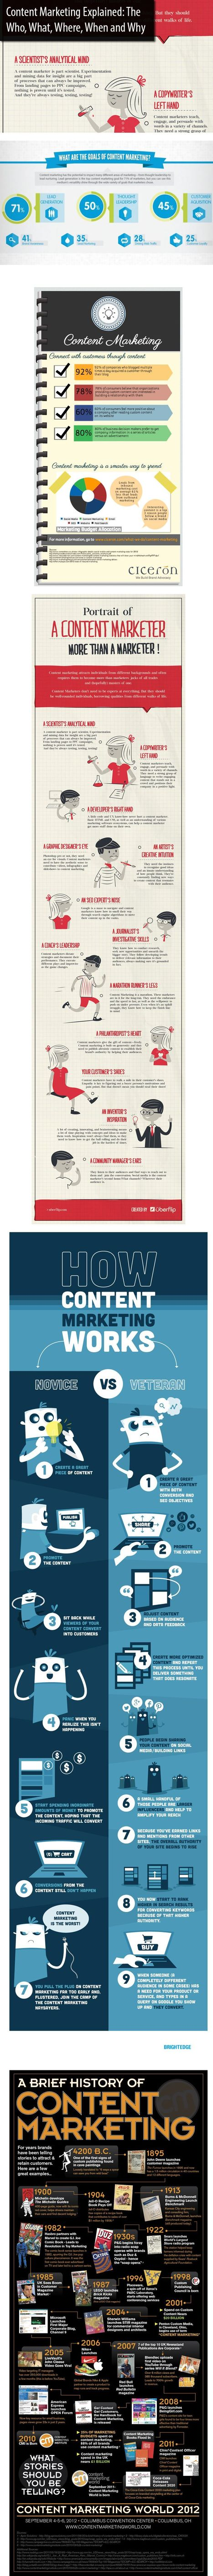 Do you know exactly, what content marketing is? | Advanced SEO | Social Media Tips | Scoop.it